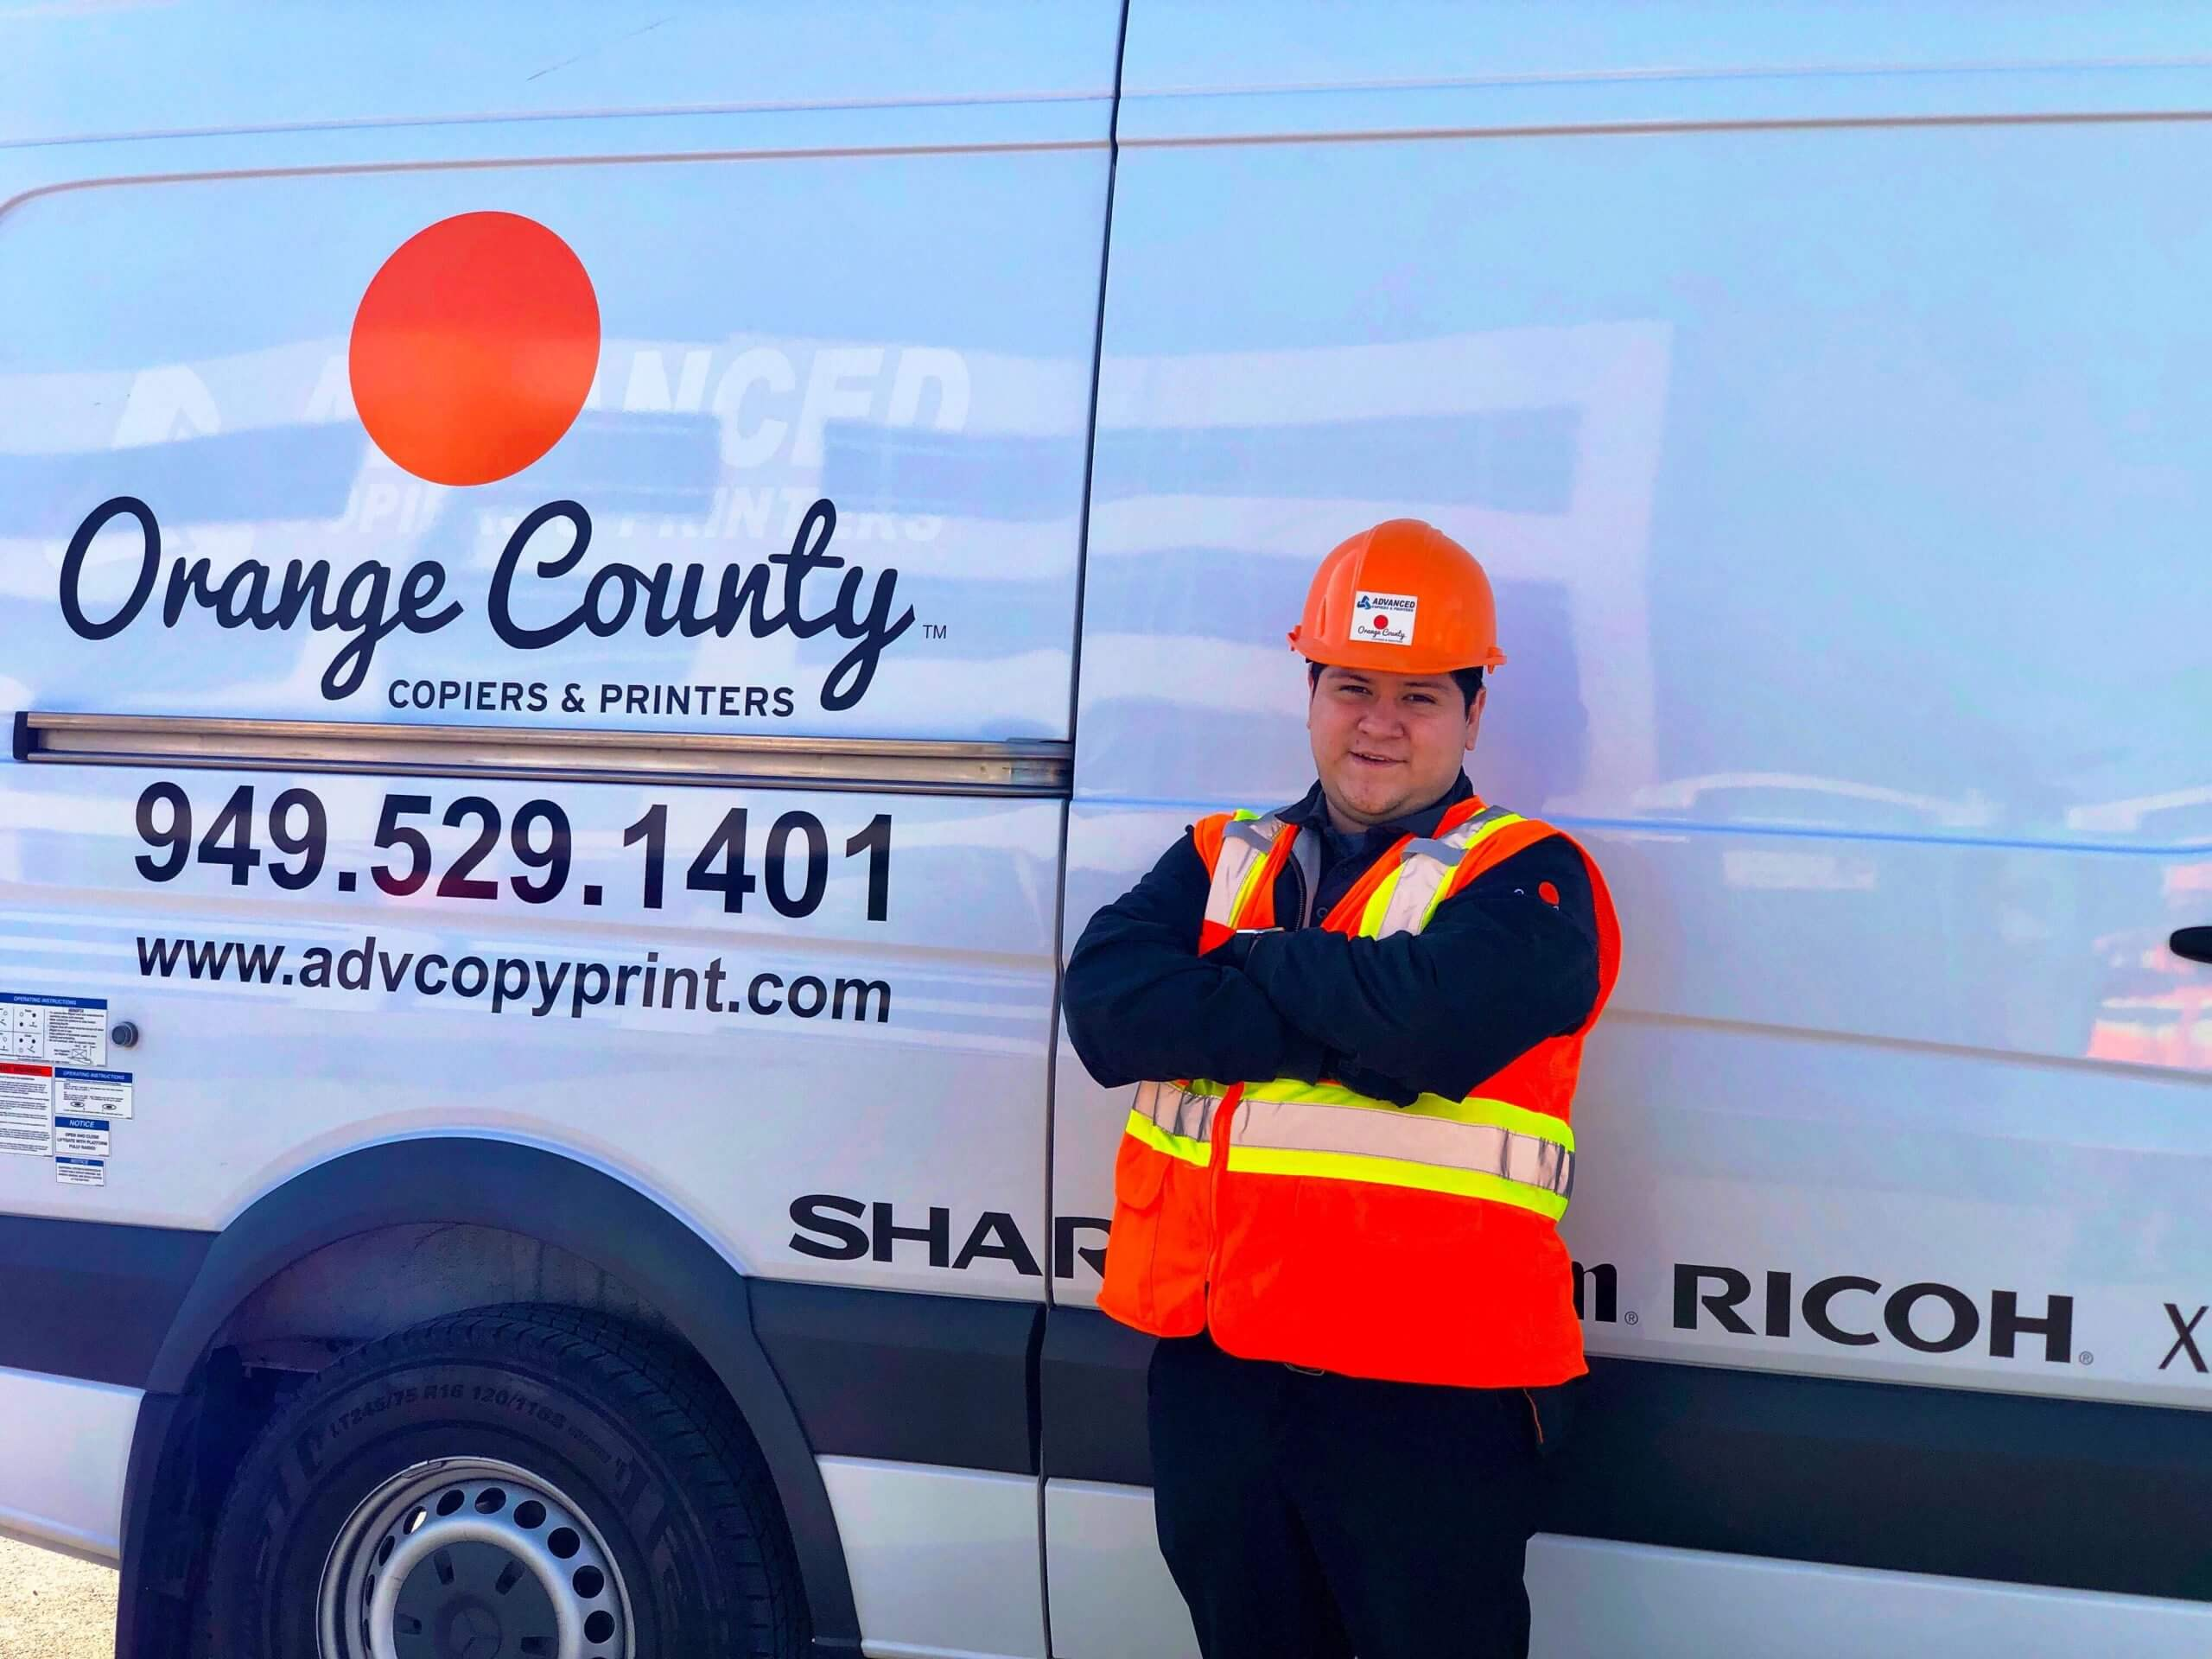 Orange County Copiers & Printers Experienced Repair Technicians